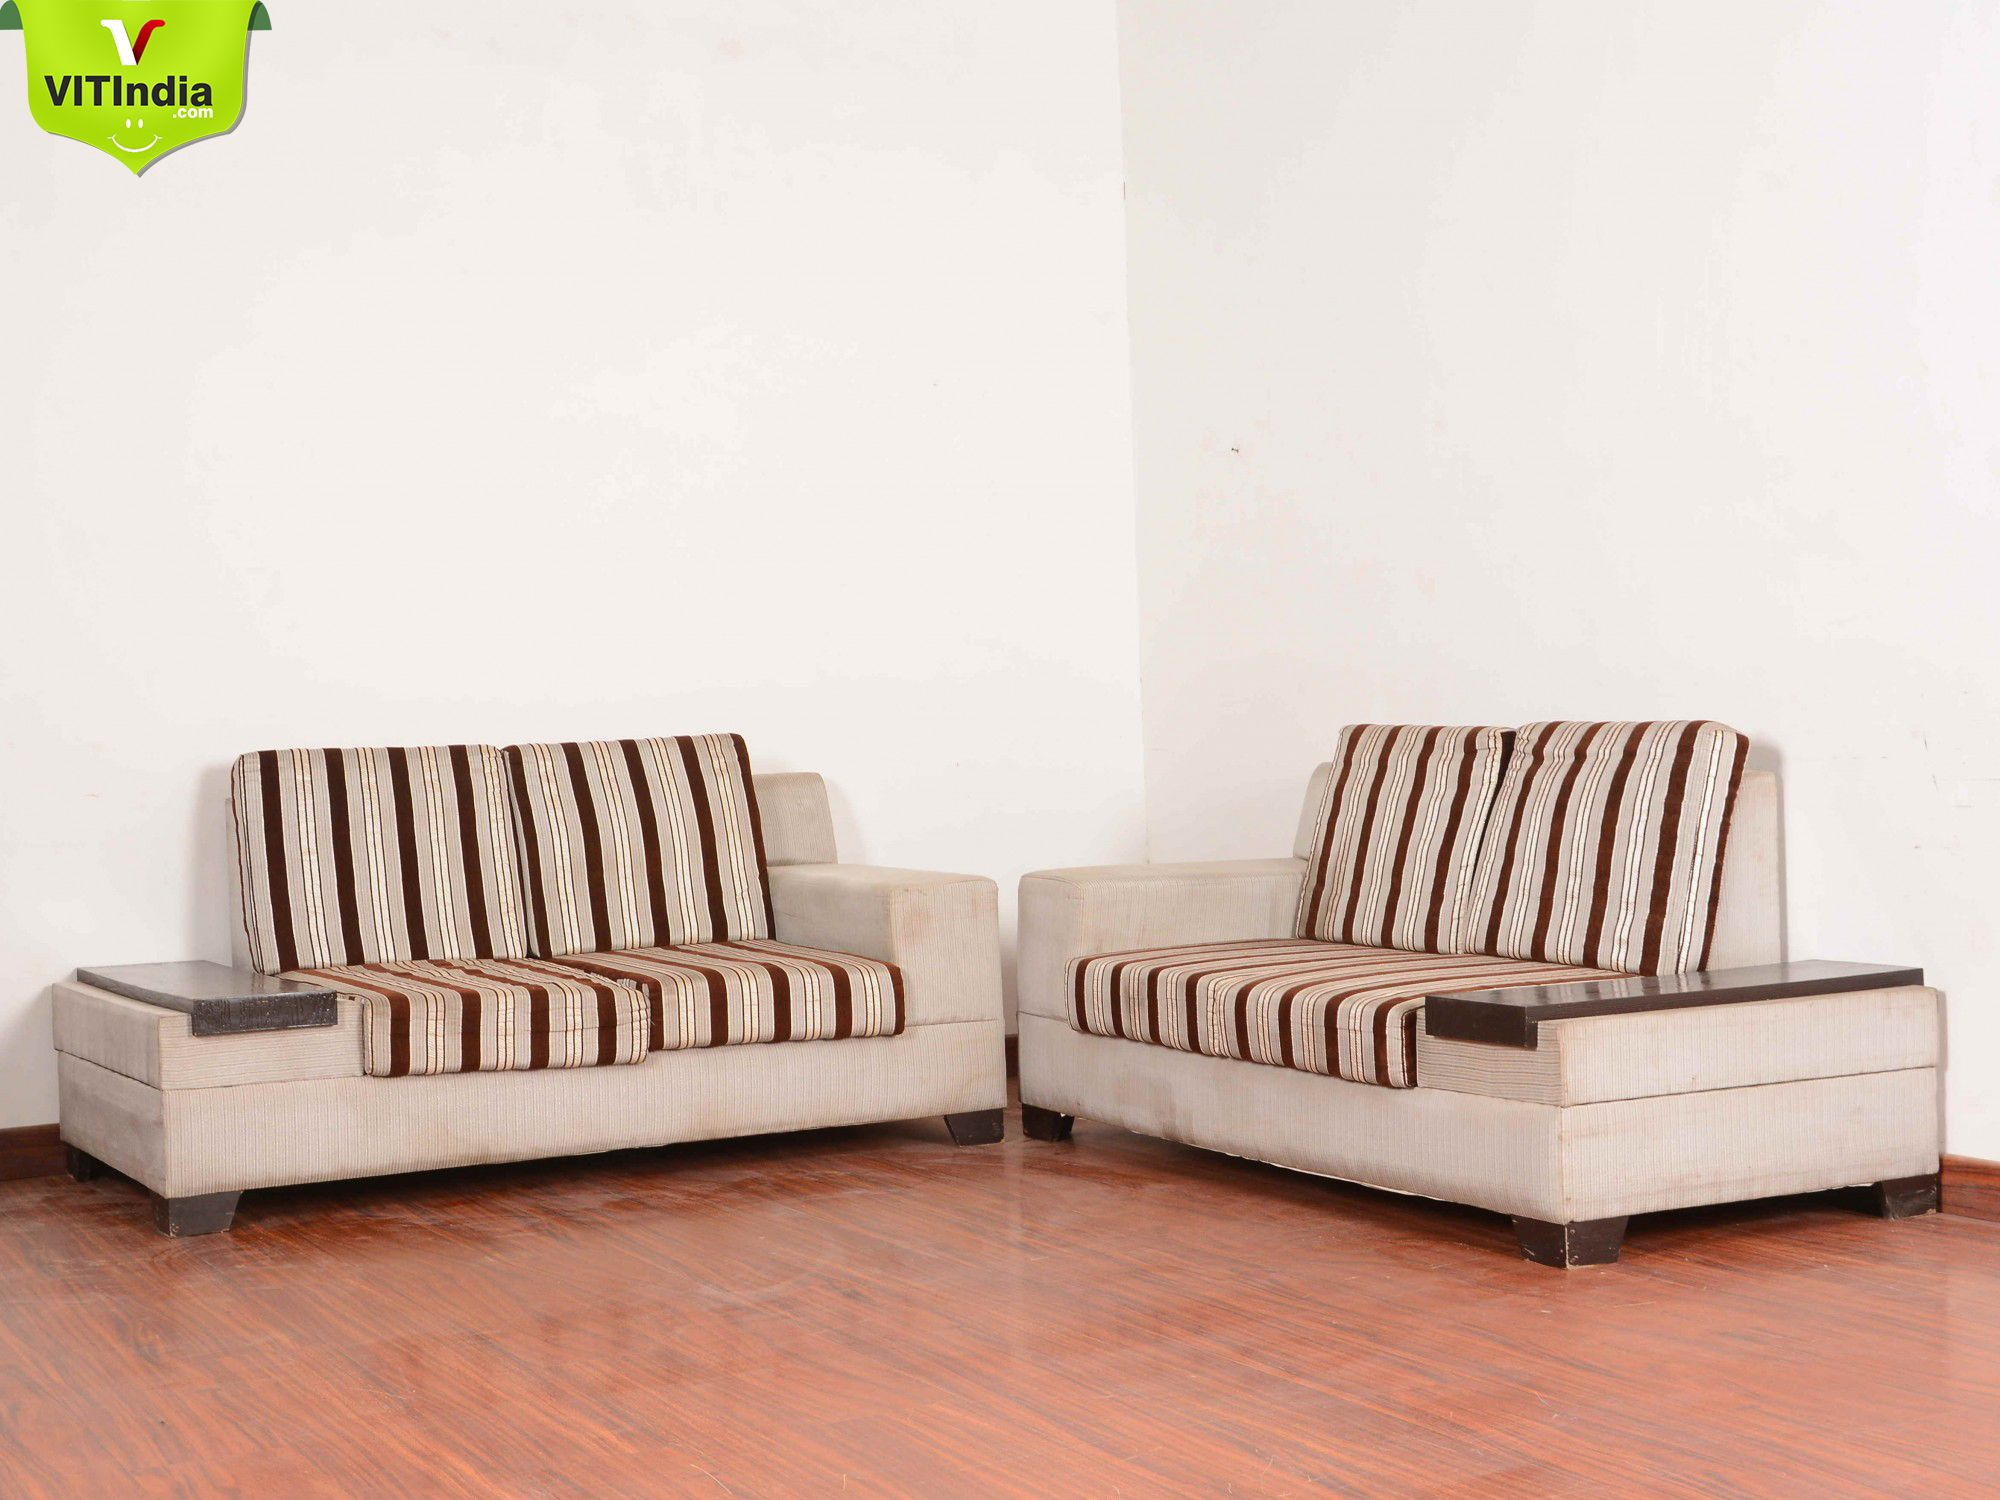 Shop 4 Sitter Sofa Set On Best Prices In Maldah Only At Vales International Trade For More Details Kindly Visit Www Vitind Home Furniture Sofa Set Furniture